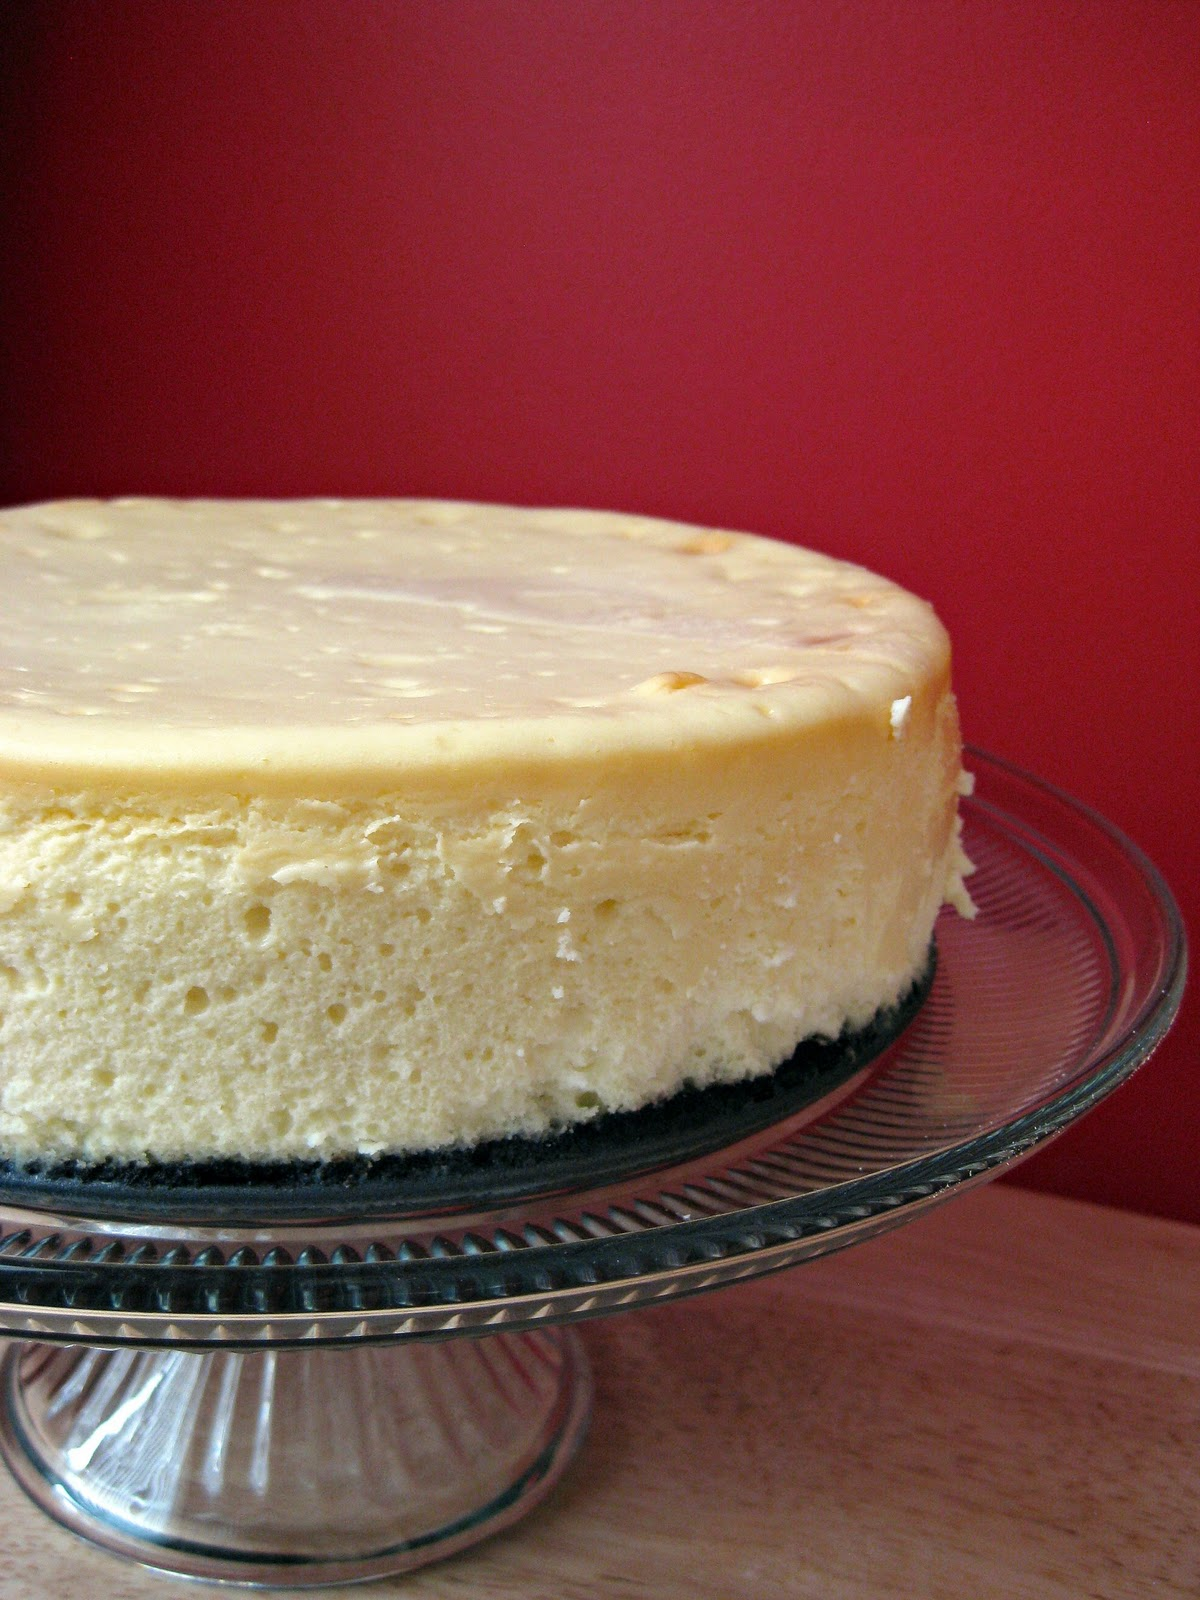 Patty's White Chocolate Cheesecake